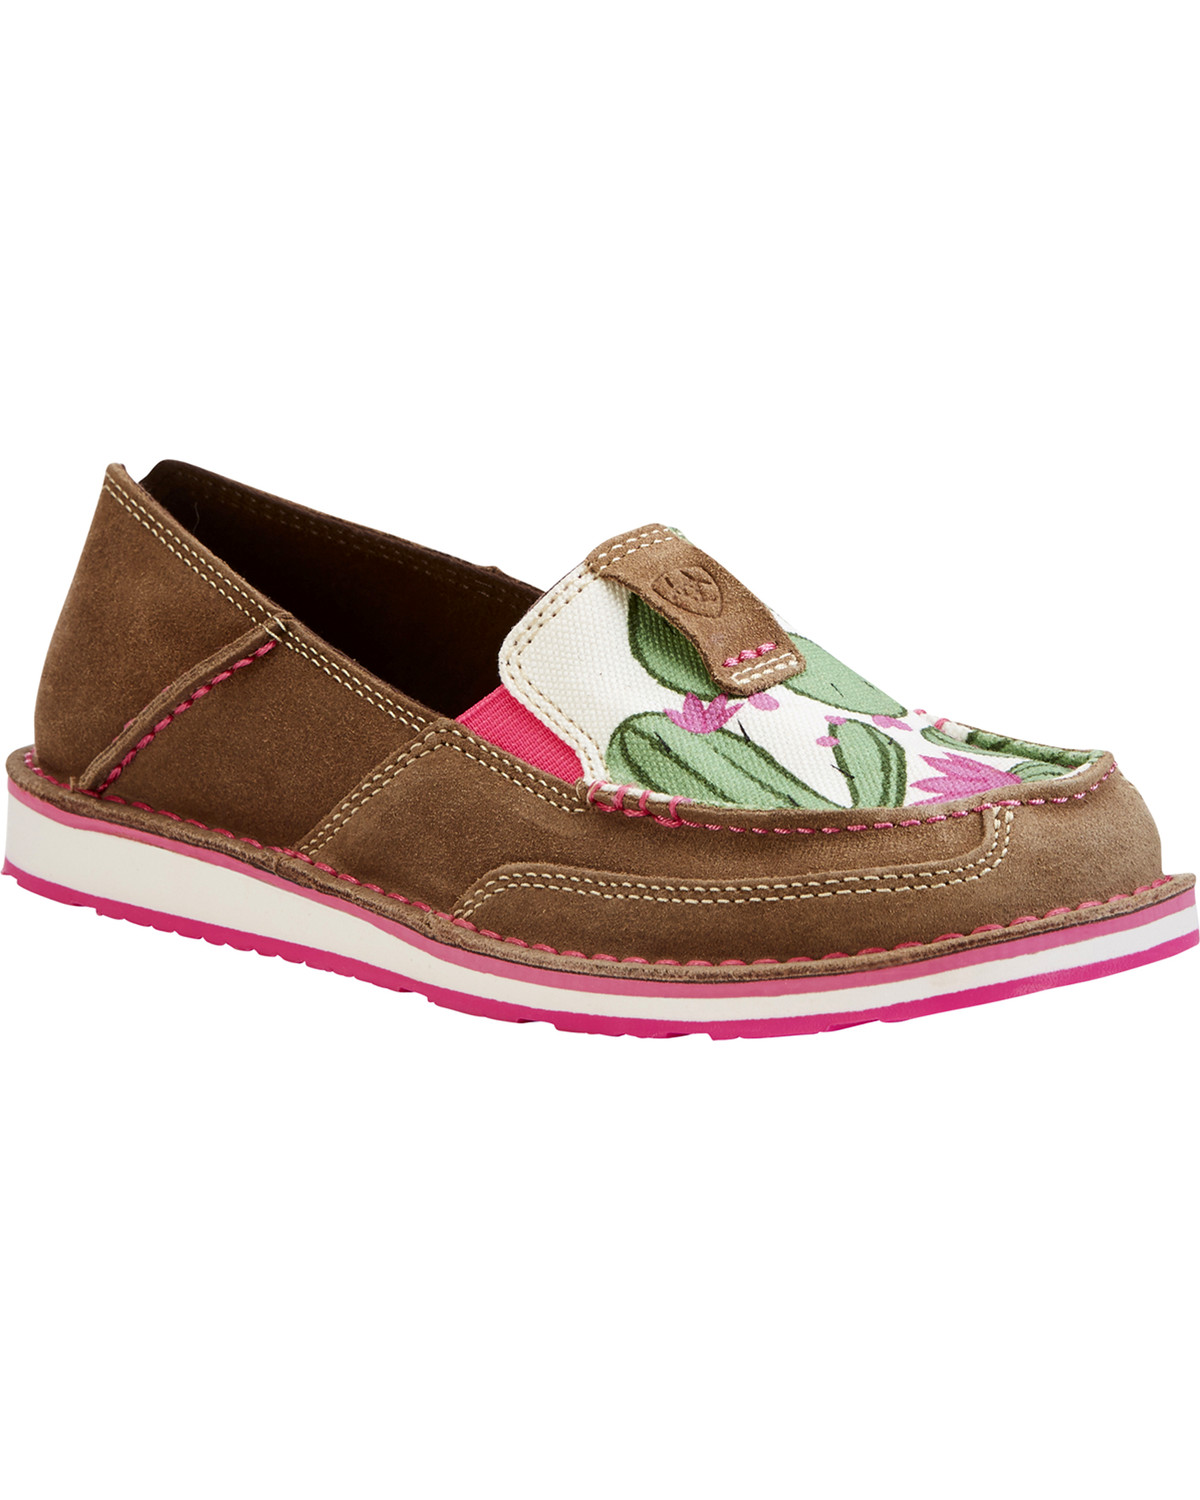 Workwear Shoes Womens